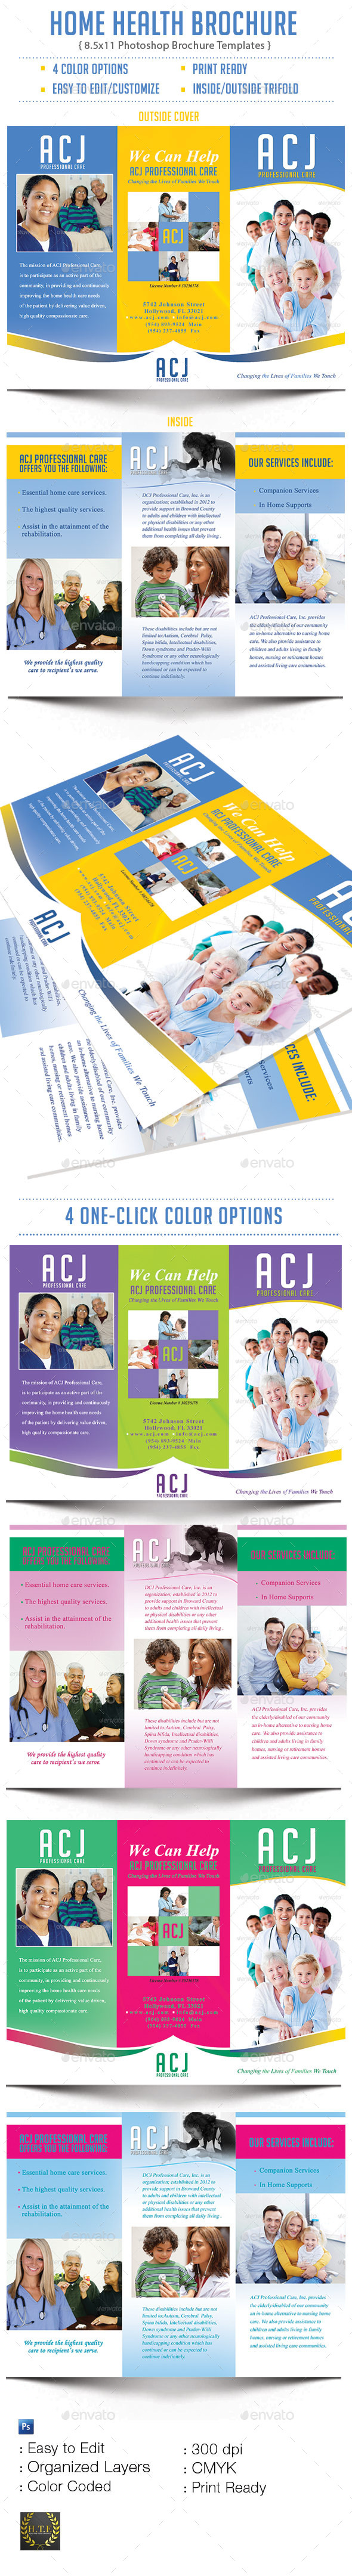 GraphicRiver Home Health Brochure 9111474